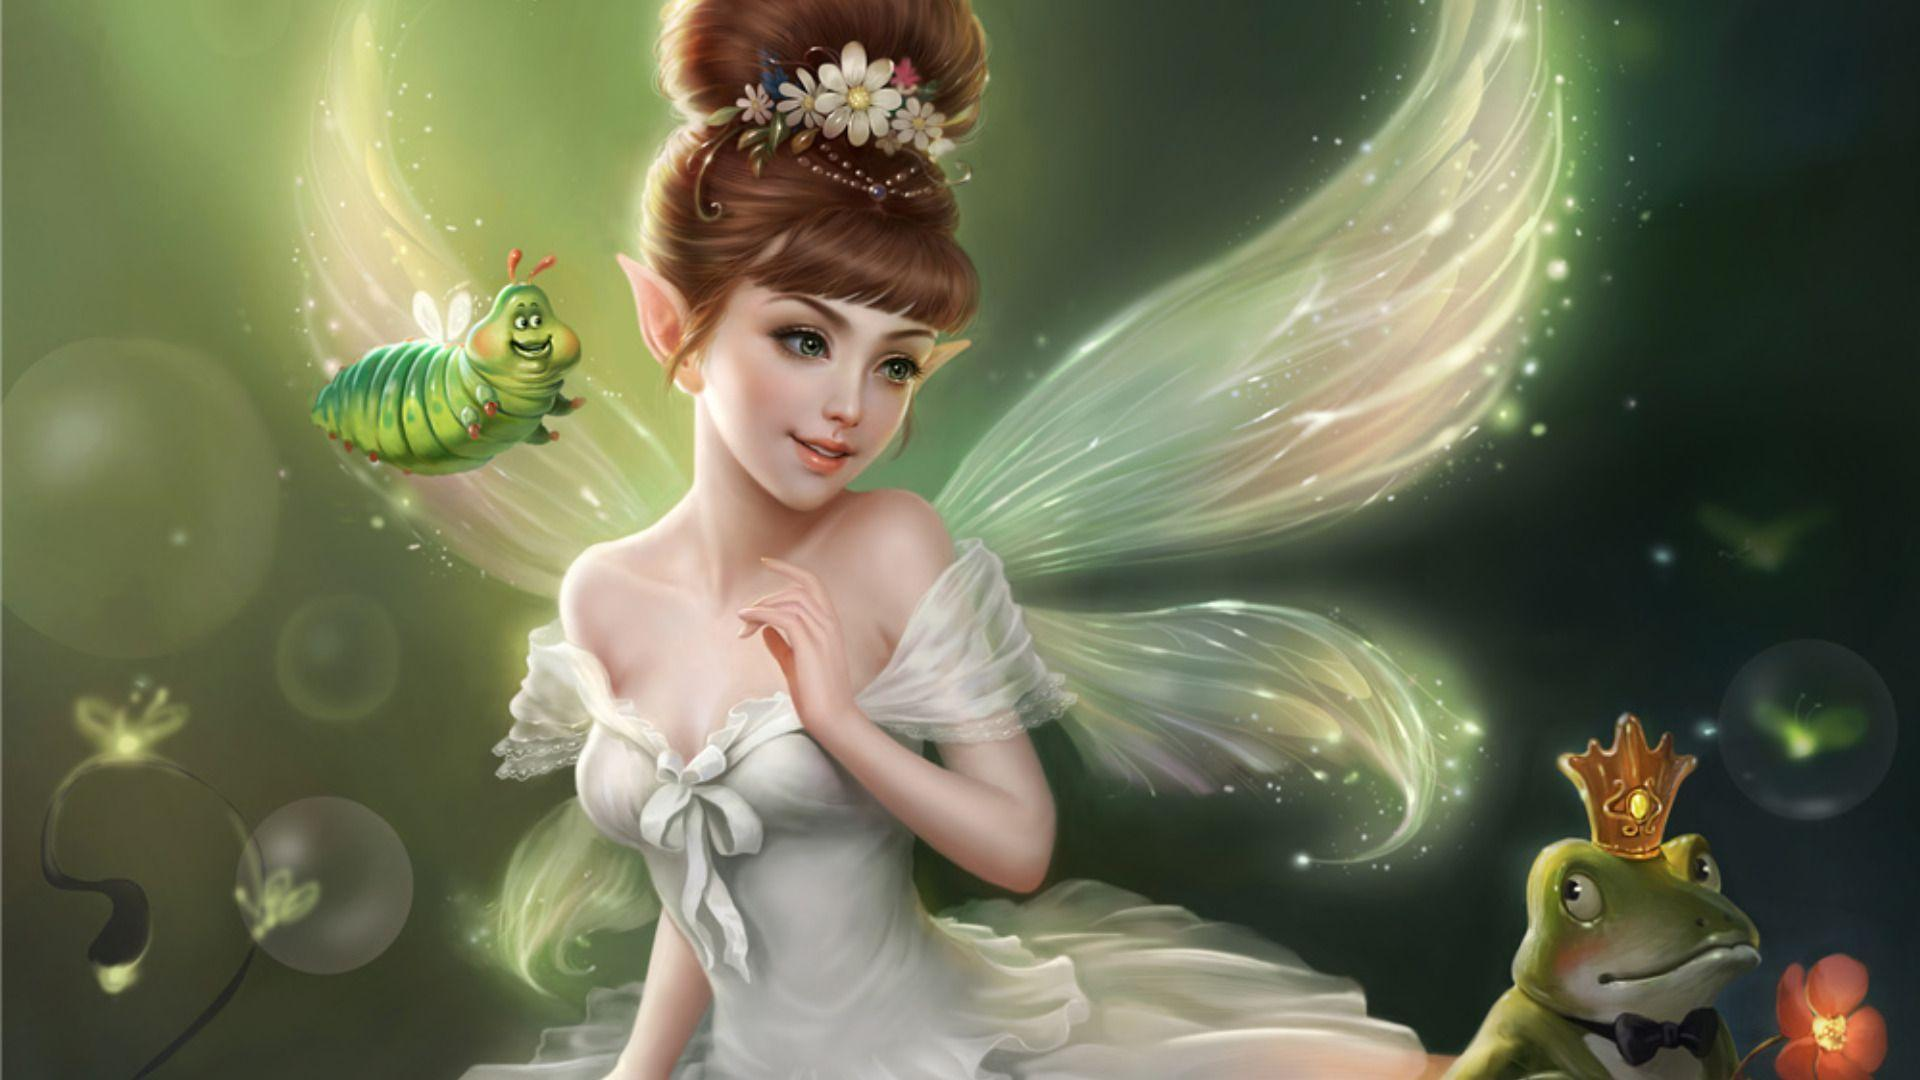 Beautiful Fairies Wallpapers - Wallpaper Cave